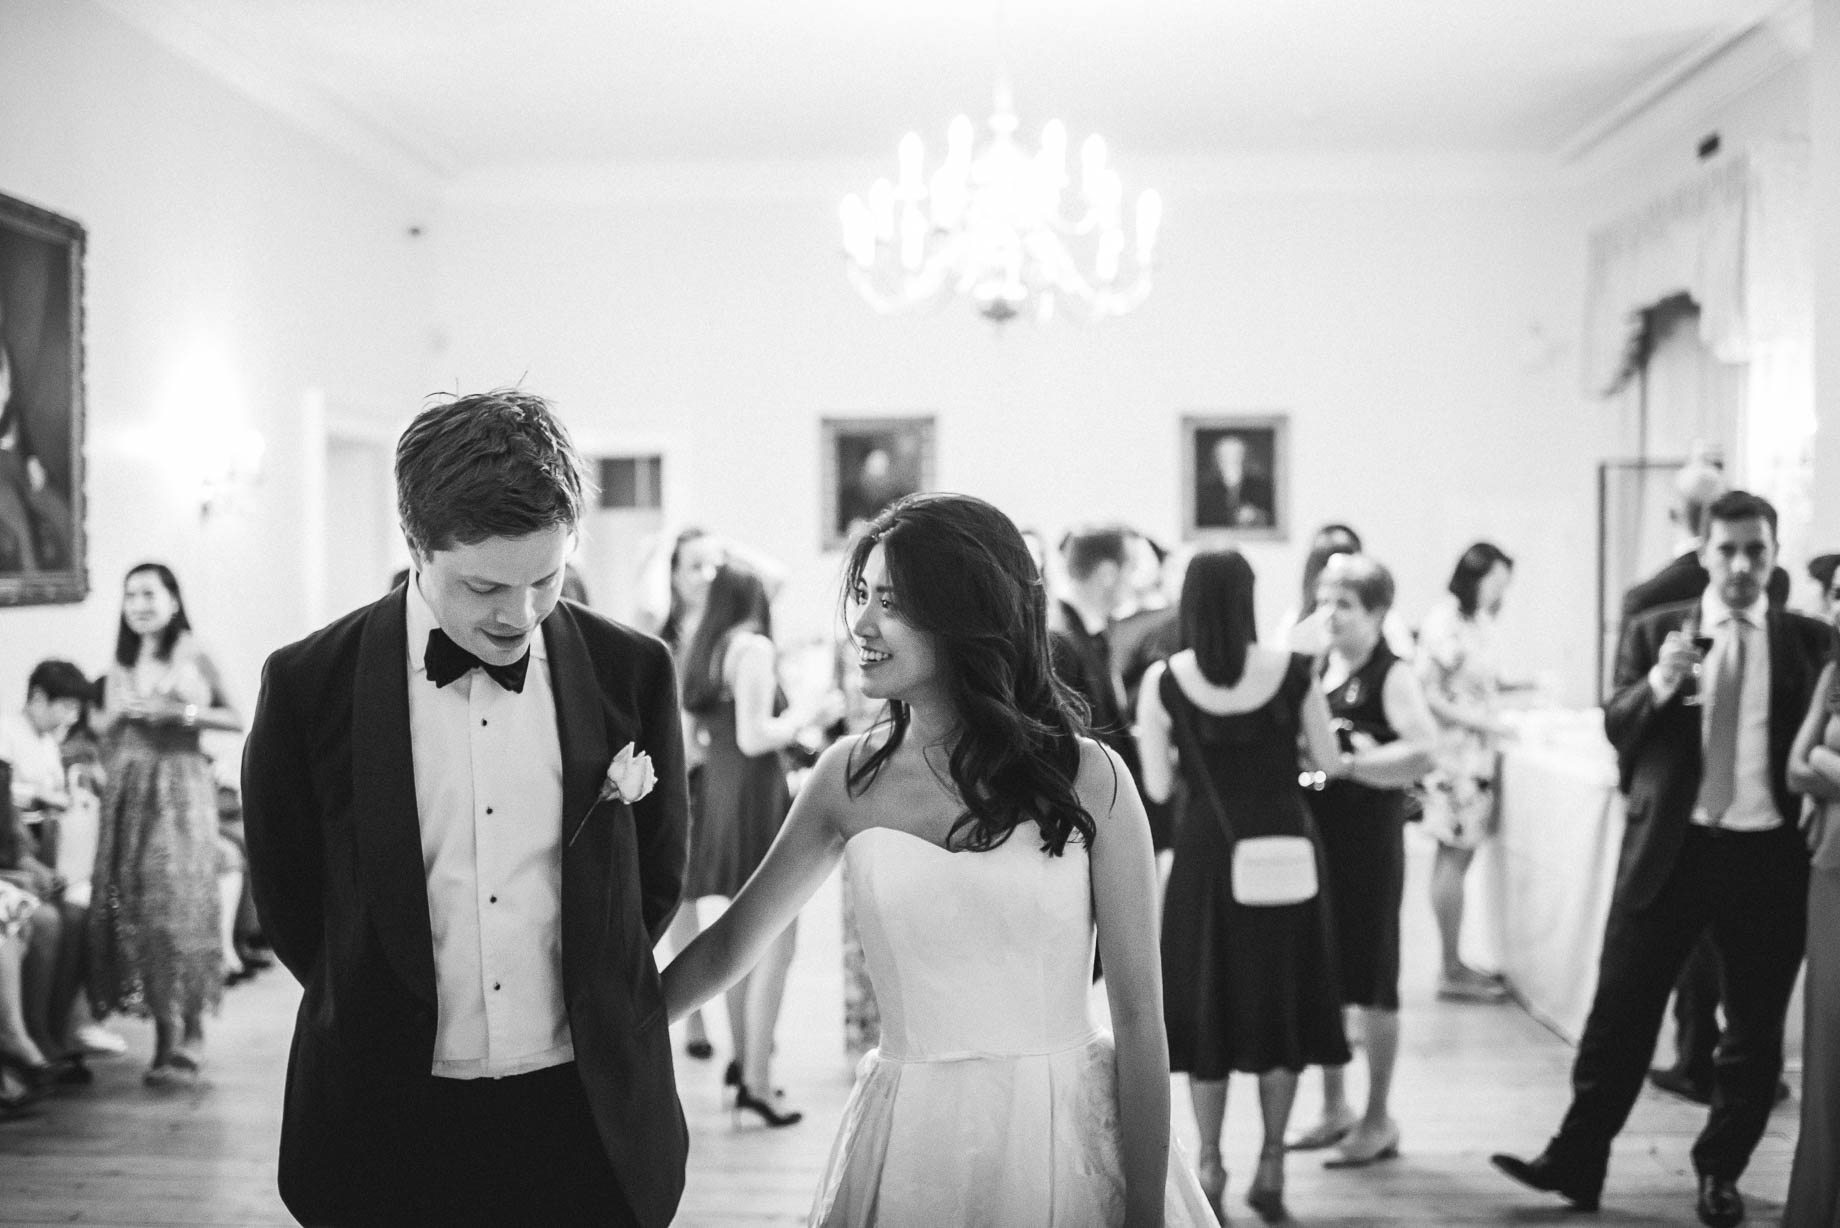 Kew Gardens wedding photography - Guy Collier Photography - Gloria and Frederik (156 of 173)